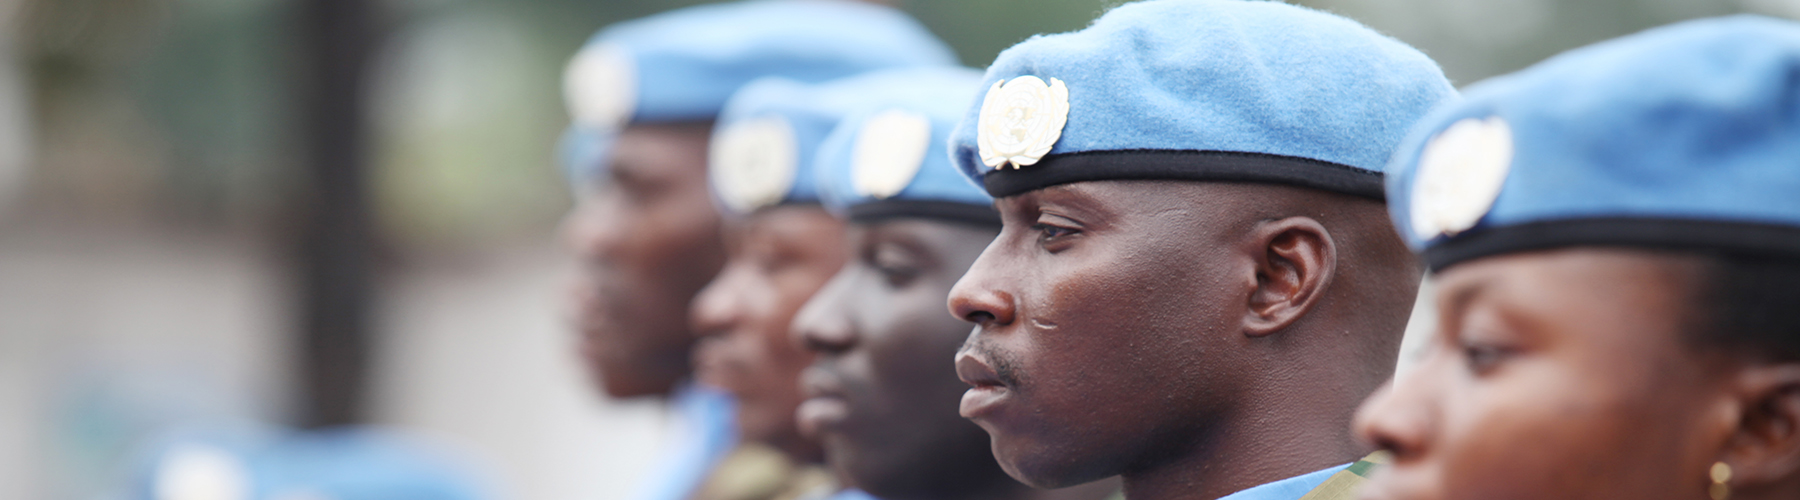 UN Peacekeepers celebrating Peacekeepers Day in DRC